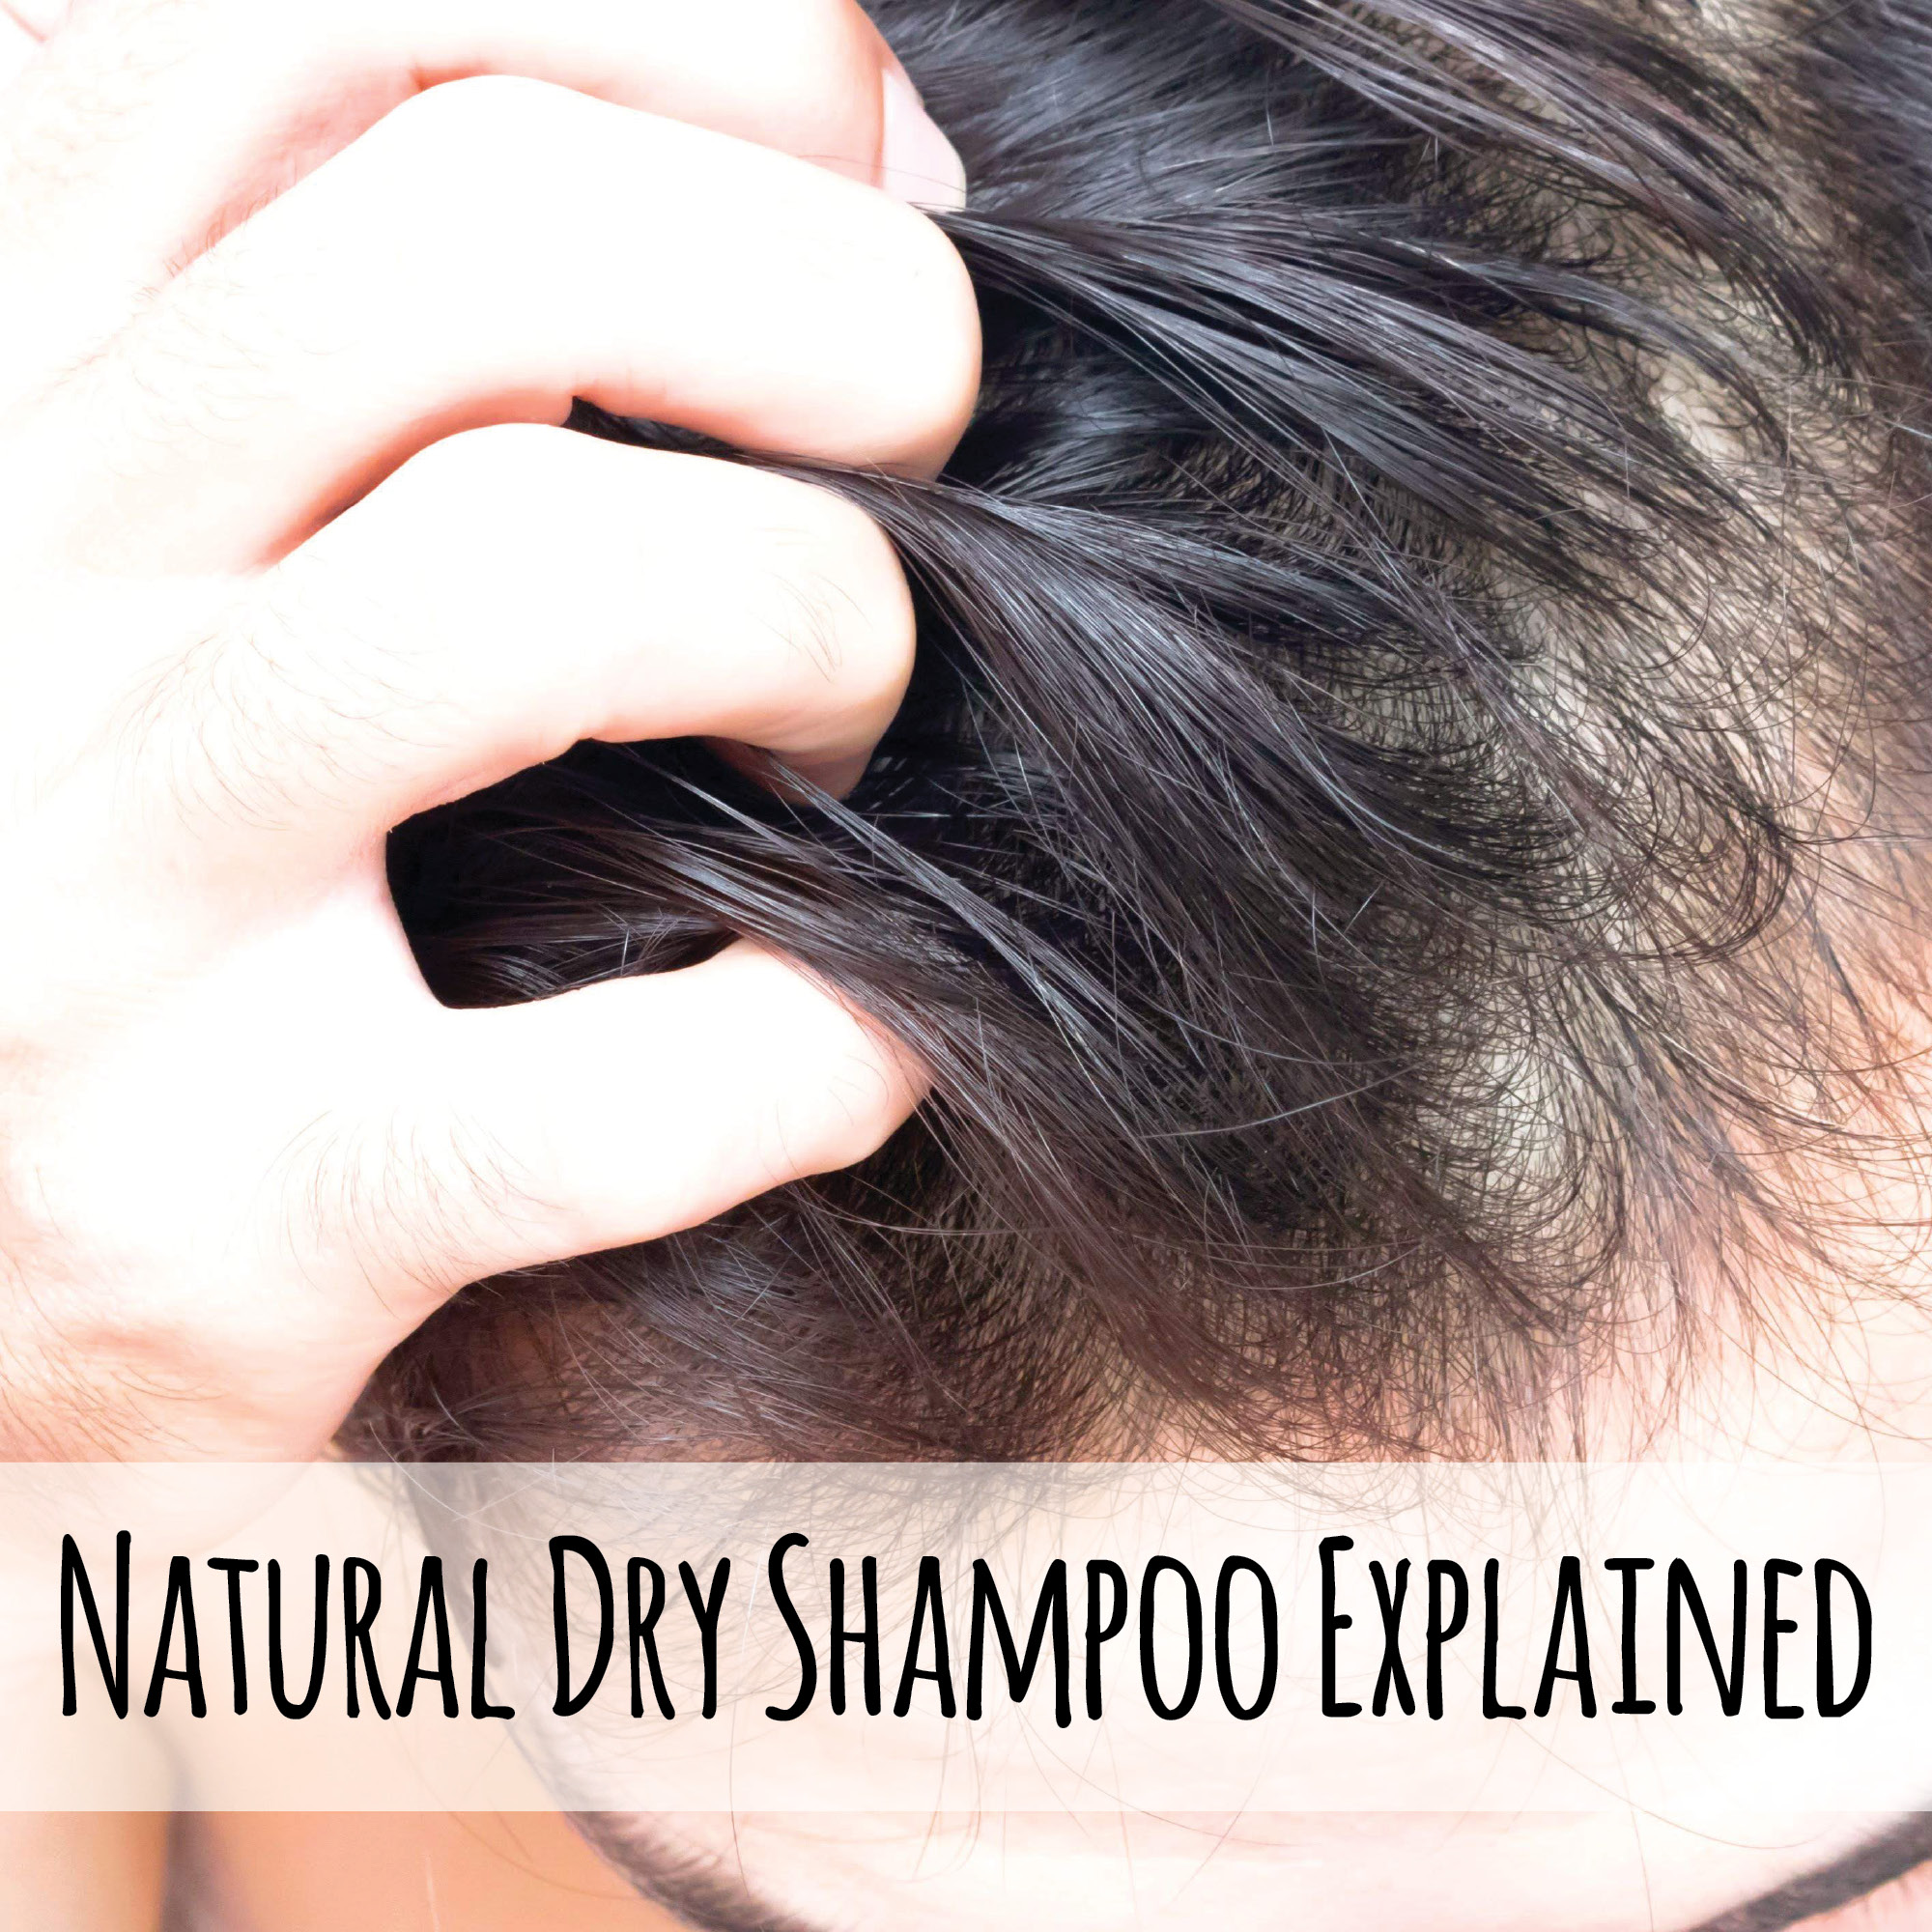 Making the switch to clean beauty can be overwhelming. Here is a guide to switch to natural dry shampoo.